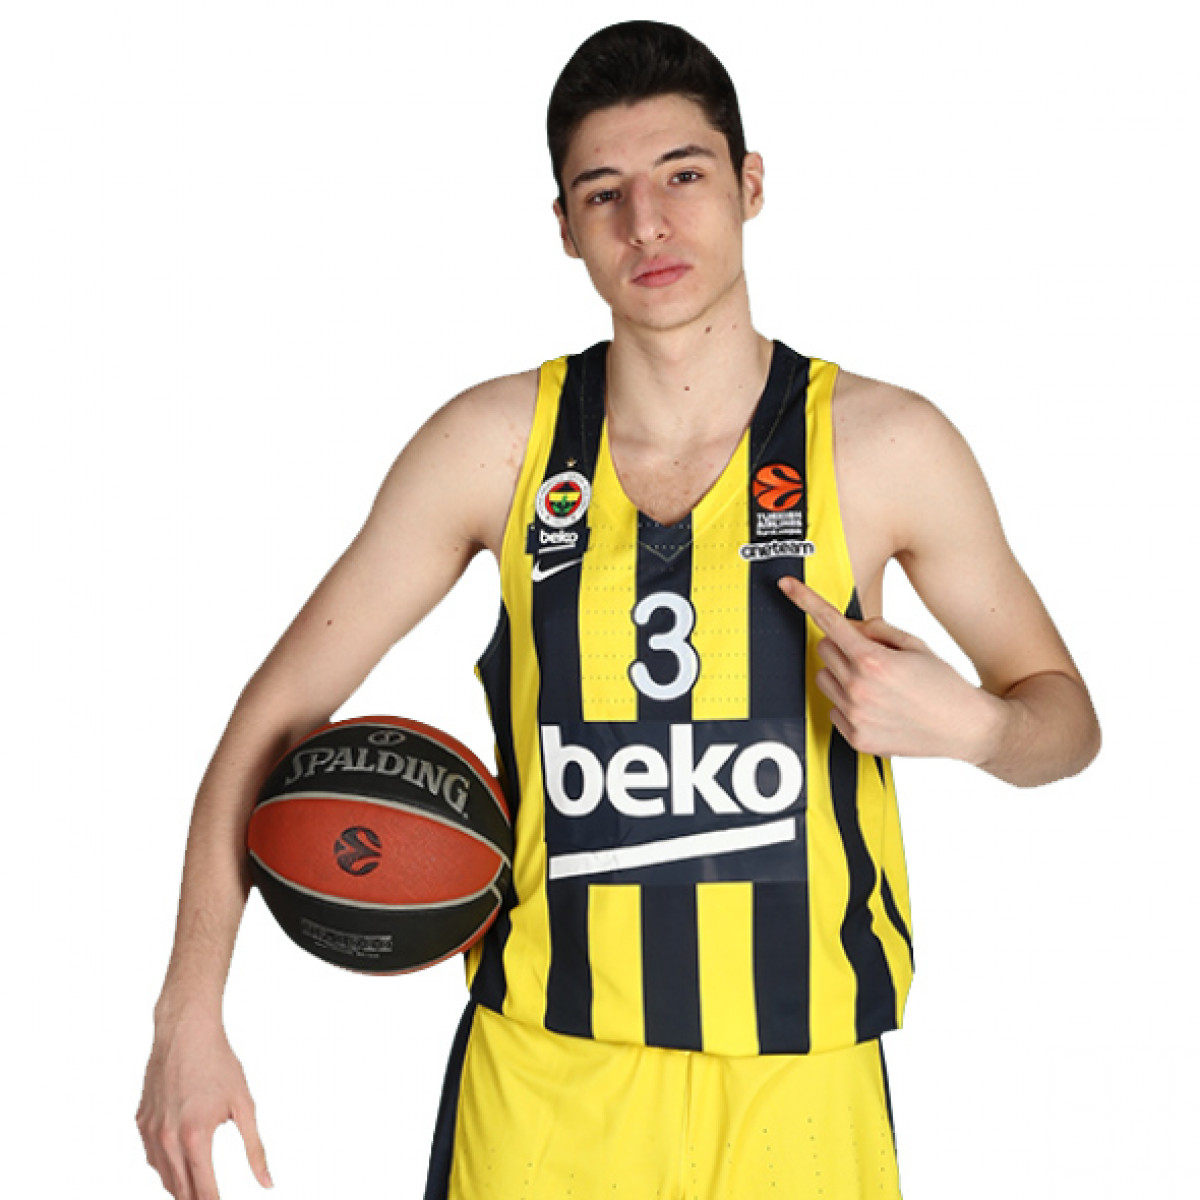 Photo of Ergi Tirpanci, 2018-2019 season